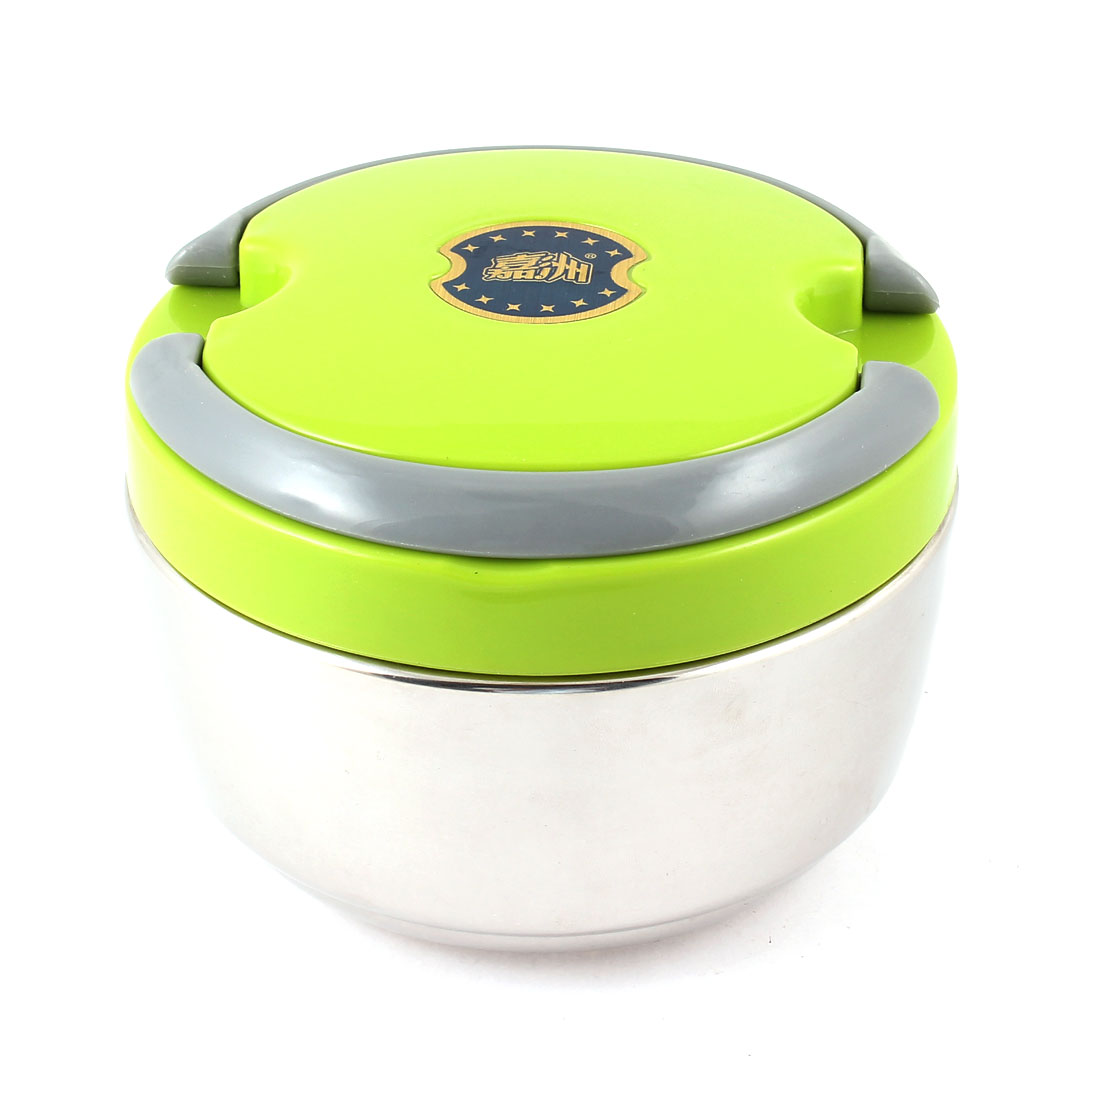 1000ML Capacity Green Plastic Cover Food Dish Container Lunch Box